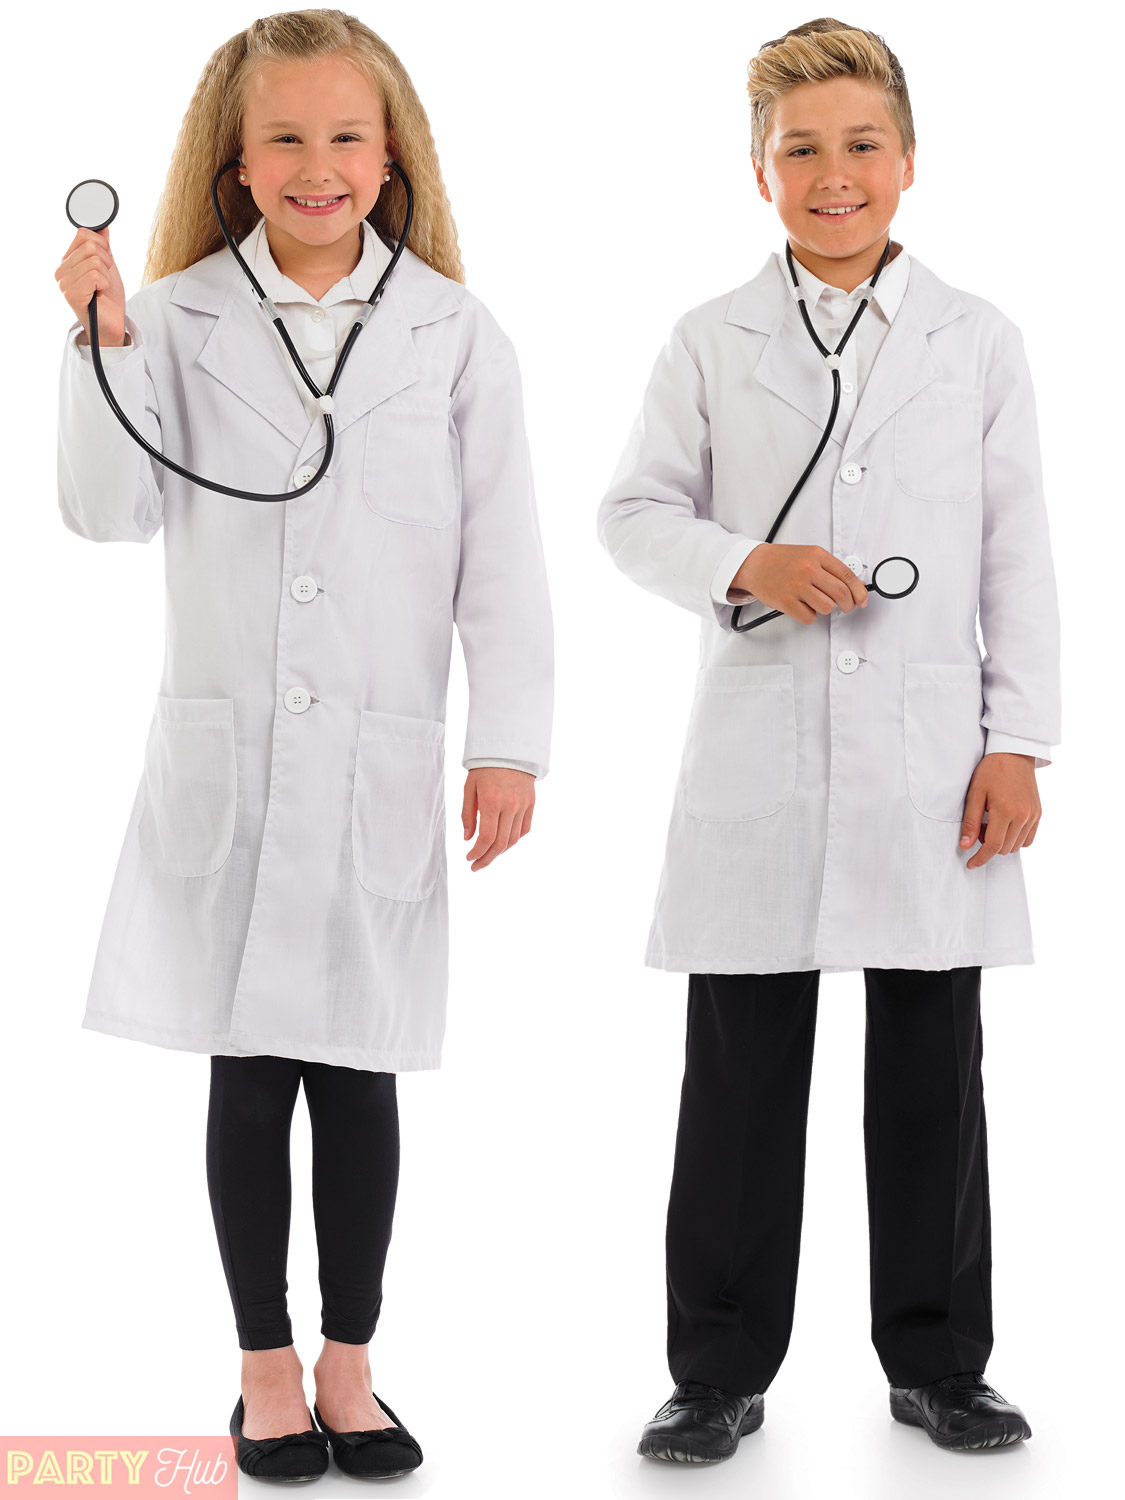 Childs Doctor Costume Boys Girls Hospital Surgeon Fancy Dress Book Week Outfit | eBay